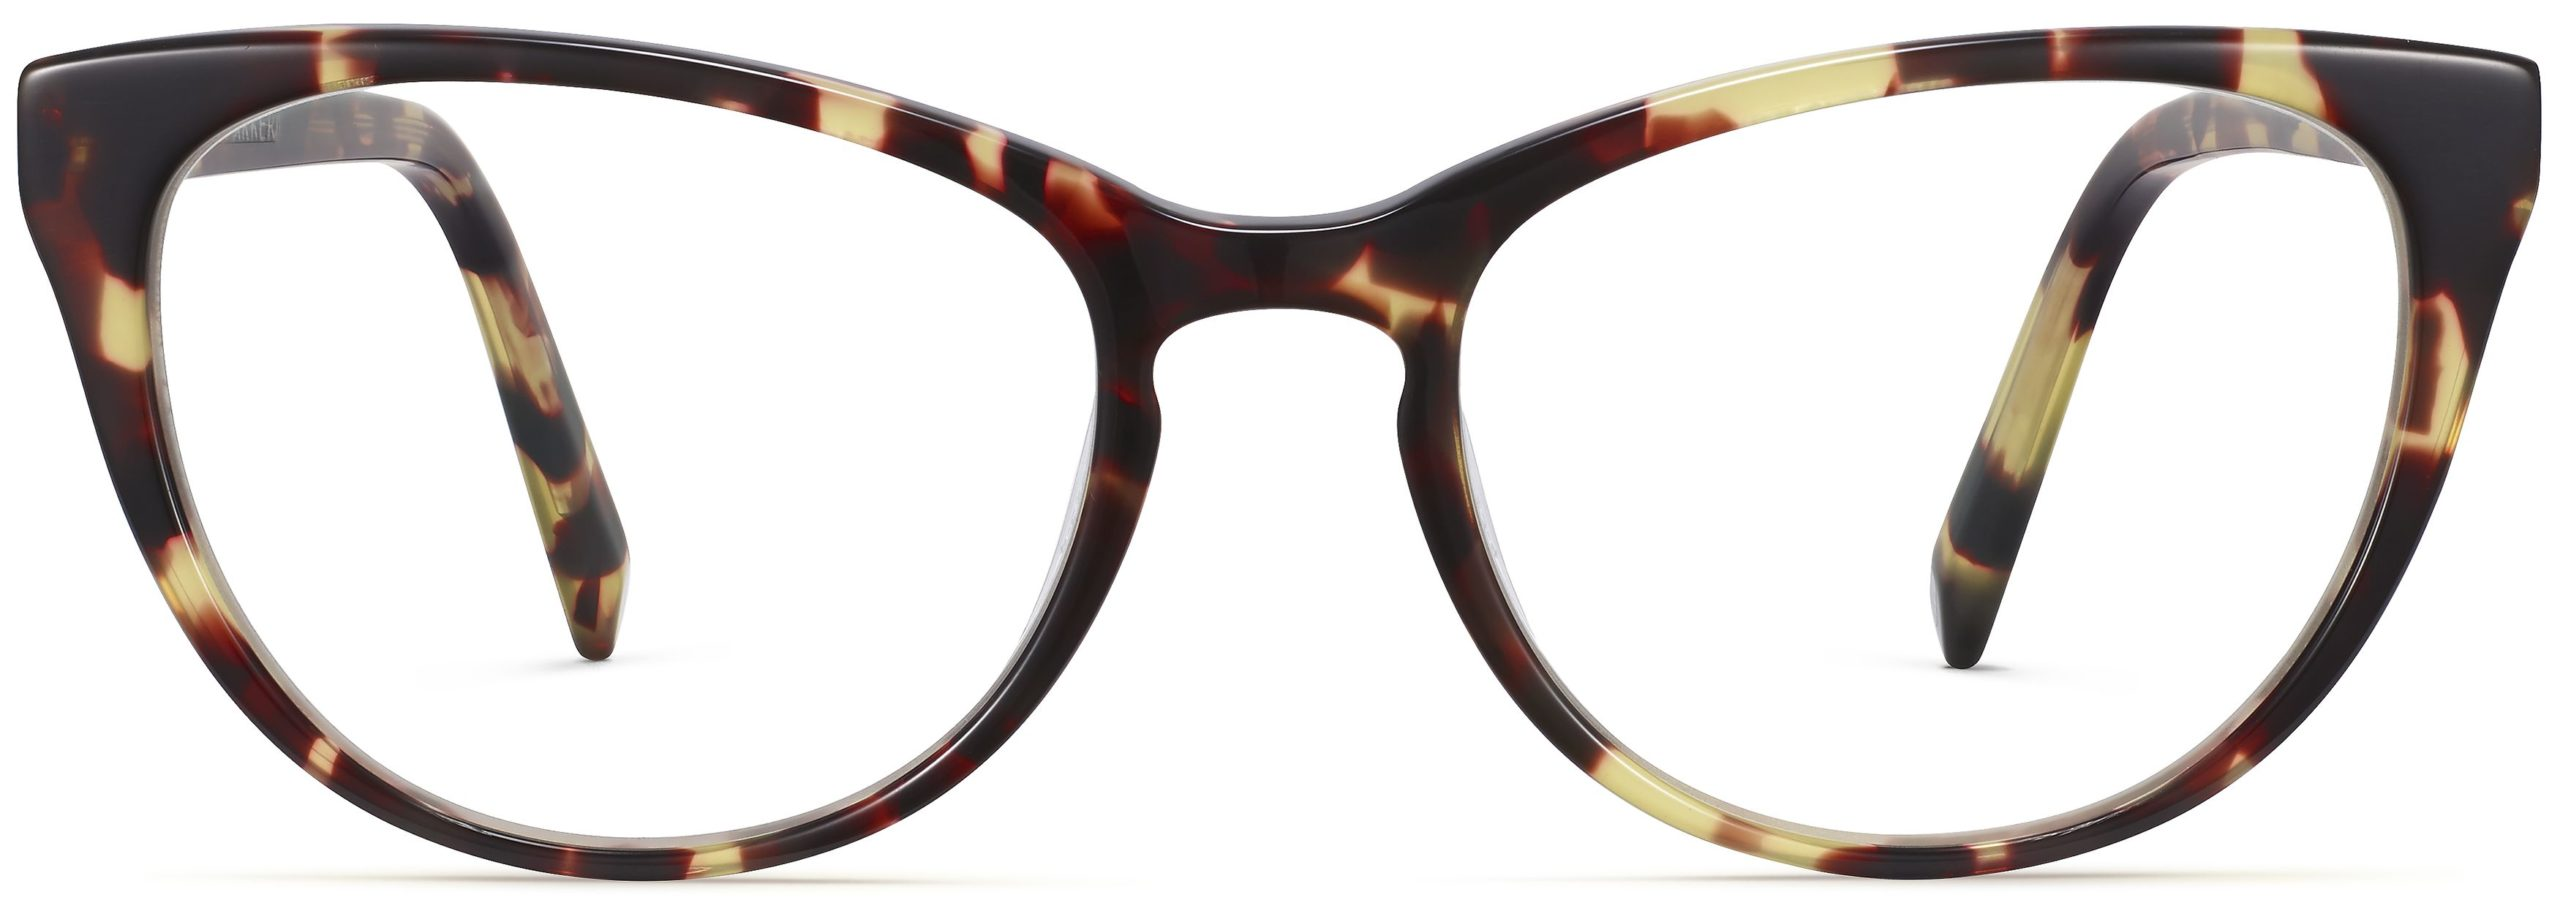 Front View Image of Shea Eyeglasses Collection, by Warby Parker Brand, in Burnt Lemon Tortoise Color